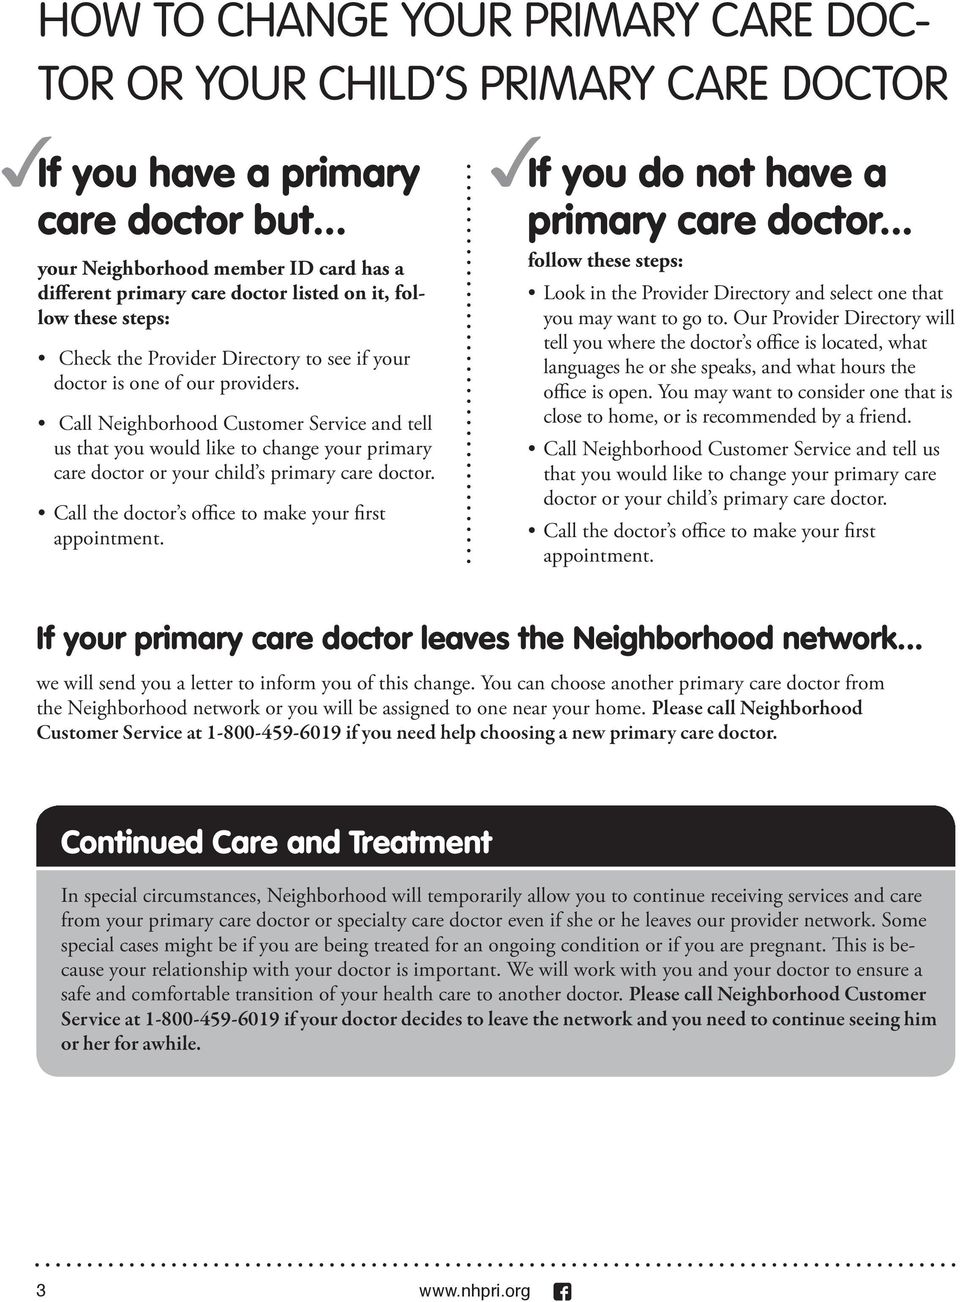 Call Neighborhood Customer Service and tell us that you would like to change your primary care doctor or your child s primary care doctor. Call the doctor s office to make your first appointment.